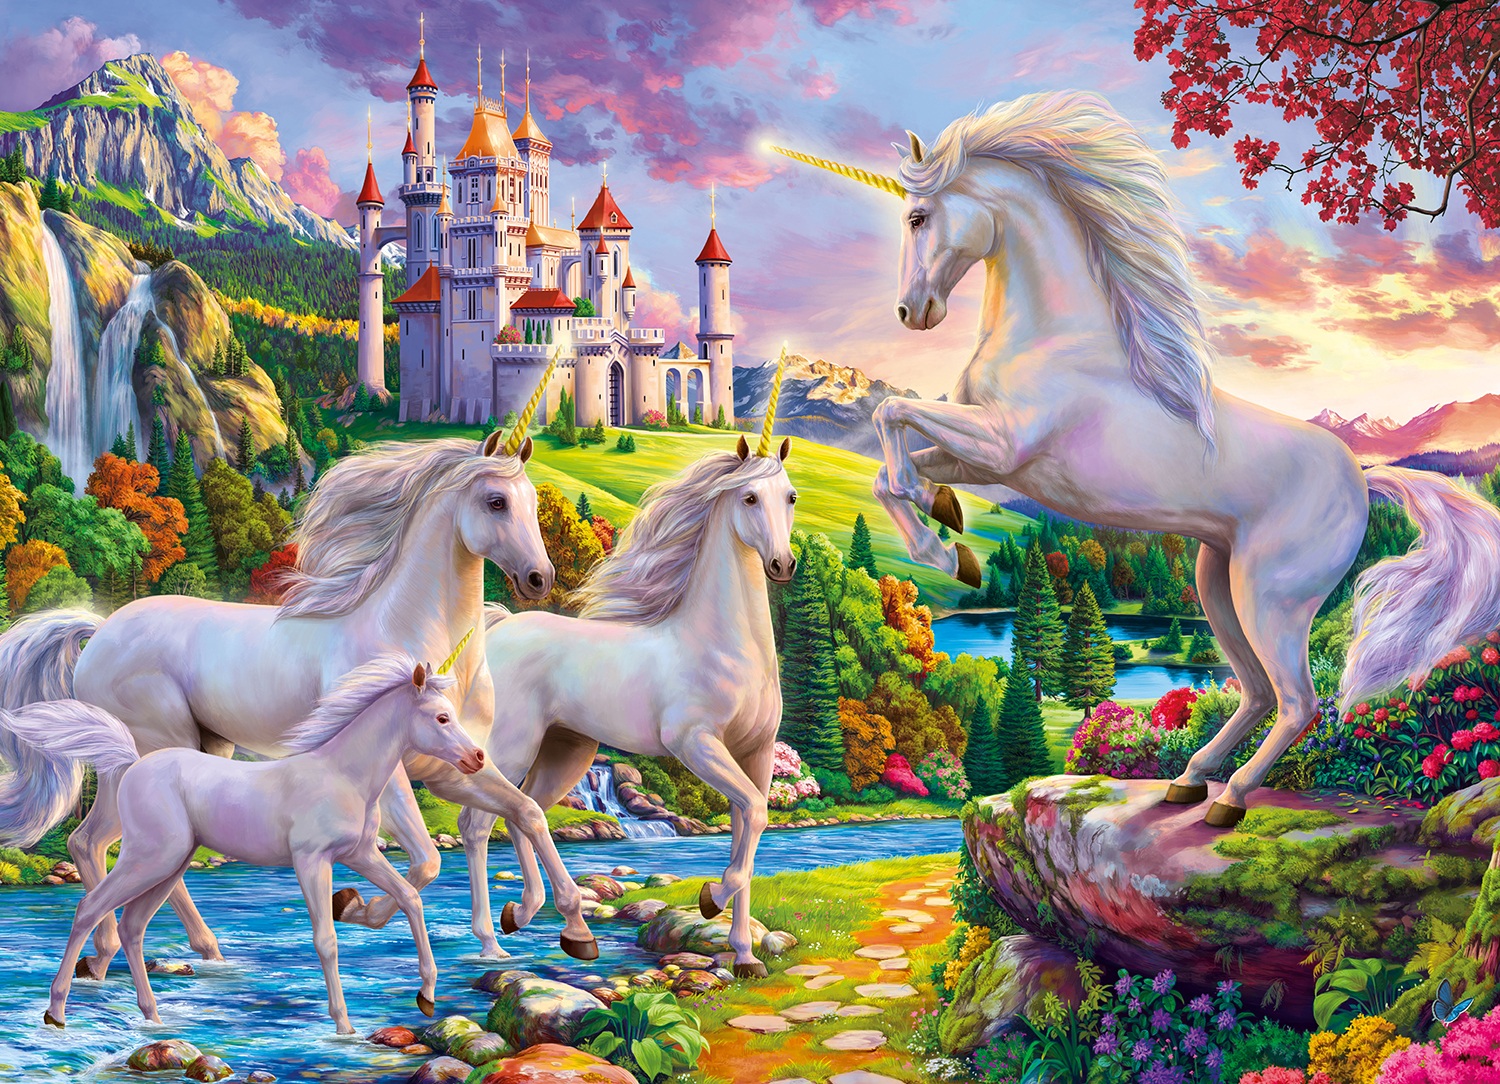 Unicorn & Castle 1000-Piece Puzzle